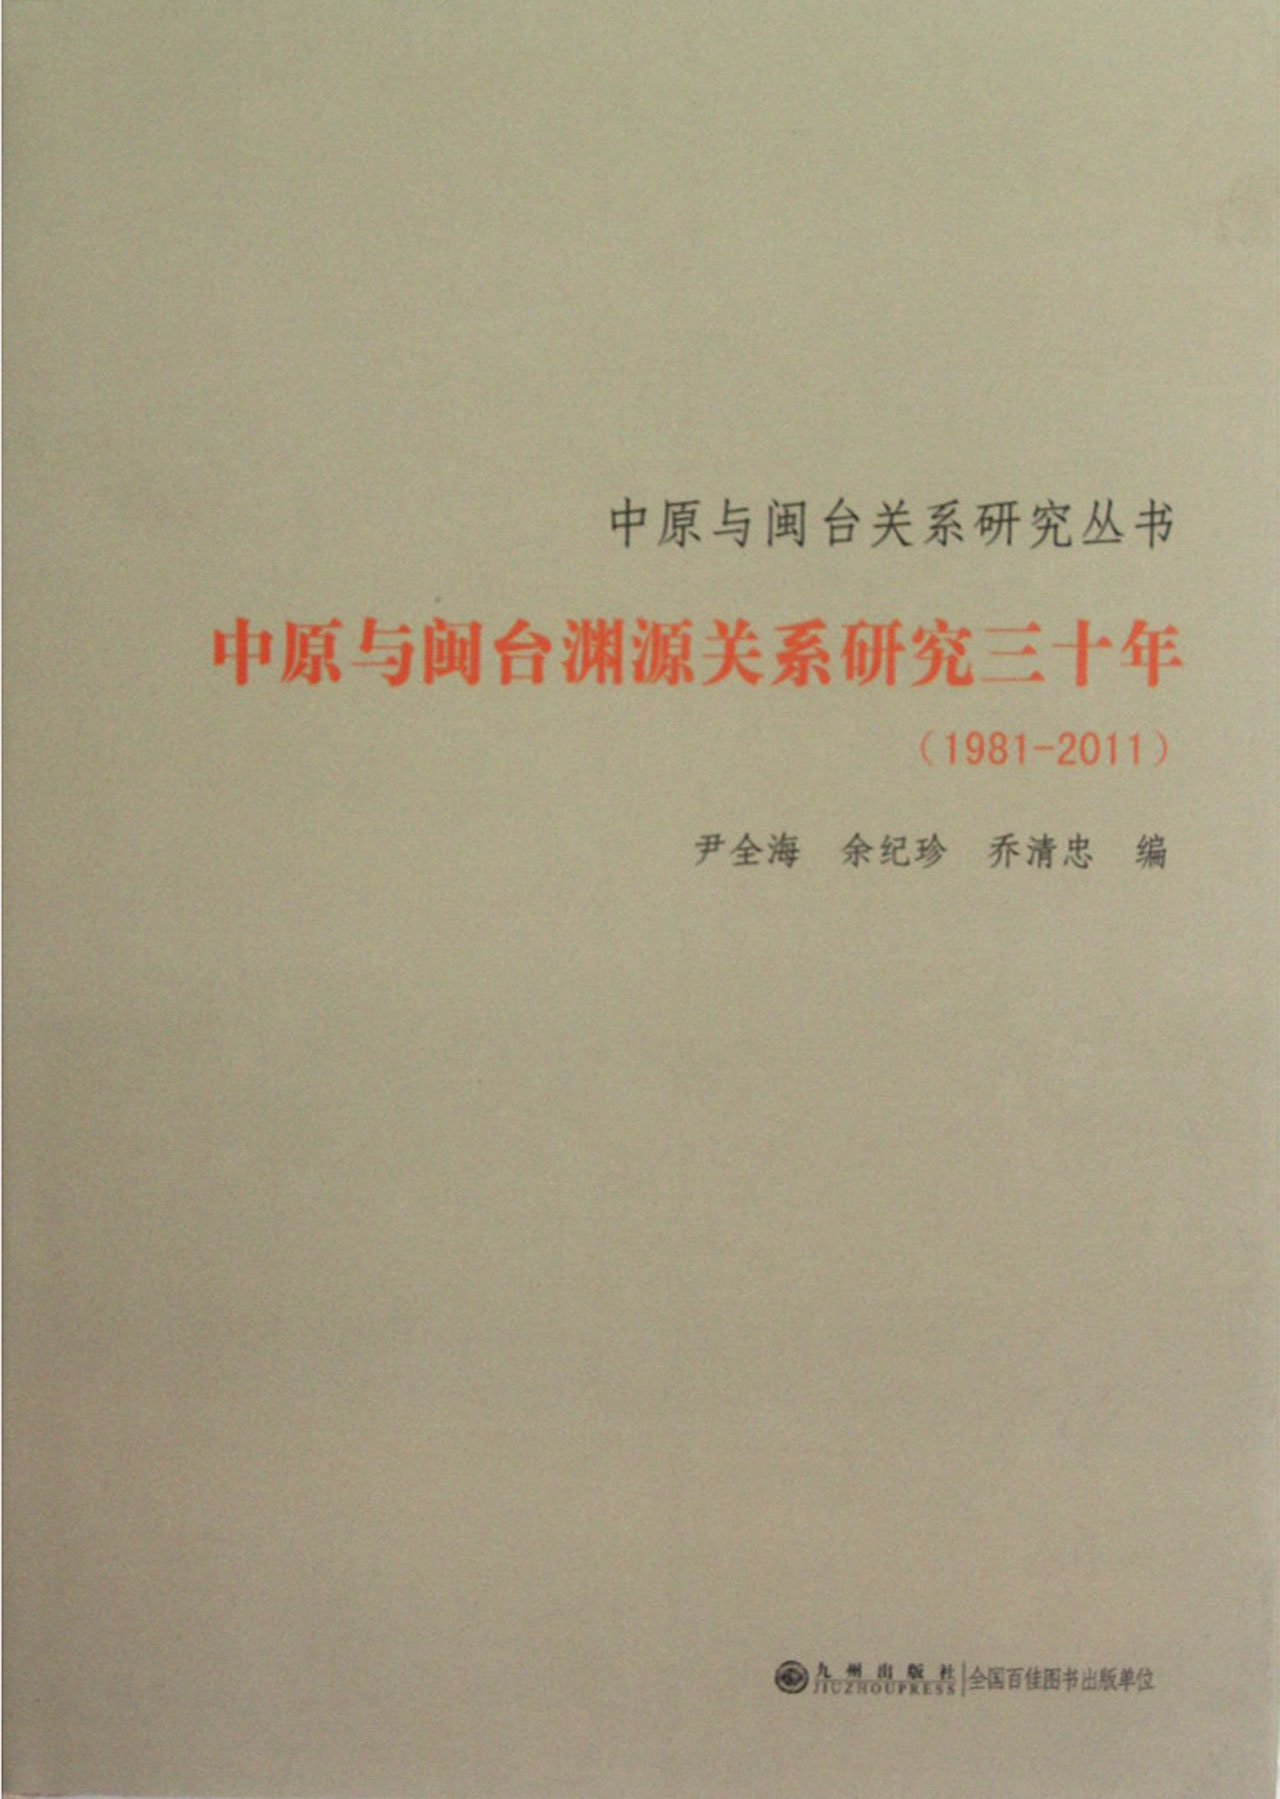 30-year Study on the relationships Between the Central Plains and the Origins of Fujian and Taiwan (1981-2011) (Refined Version) /The Central Plains ... Research Series (Chinese Edition) pdf epub